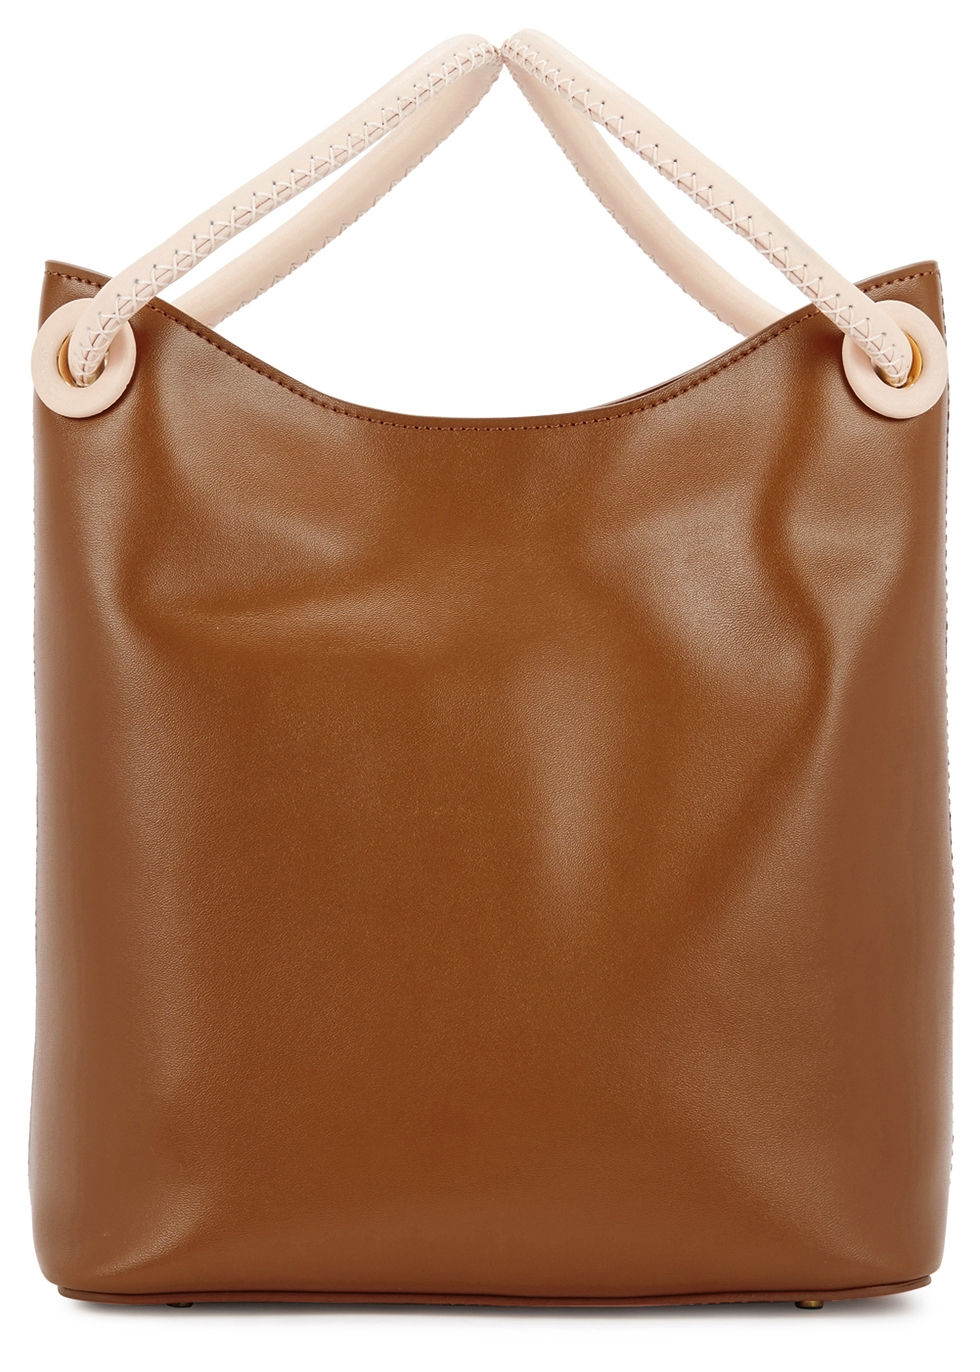 ELLEME VOSGES SMALL BROWN LEATHER TOTE